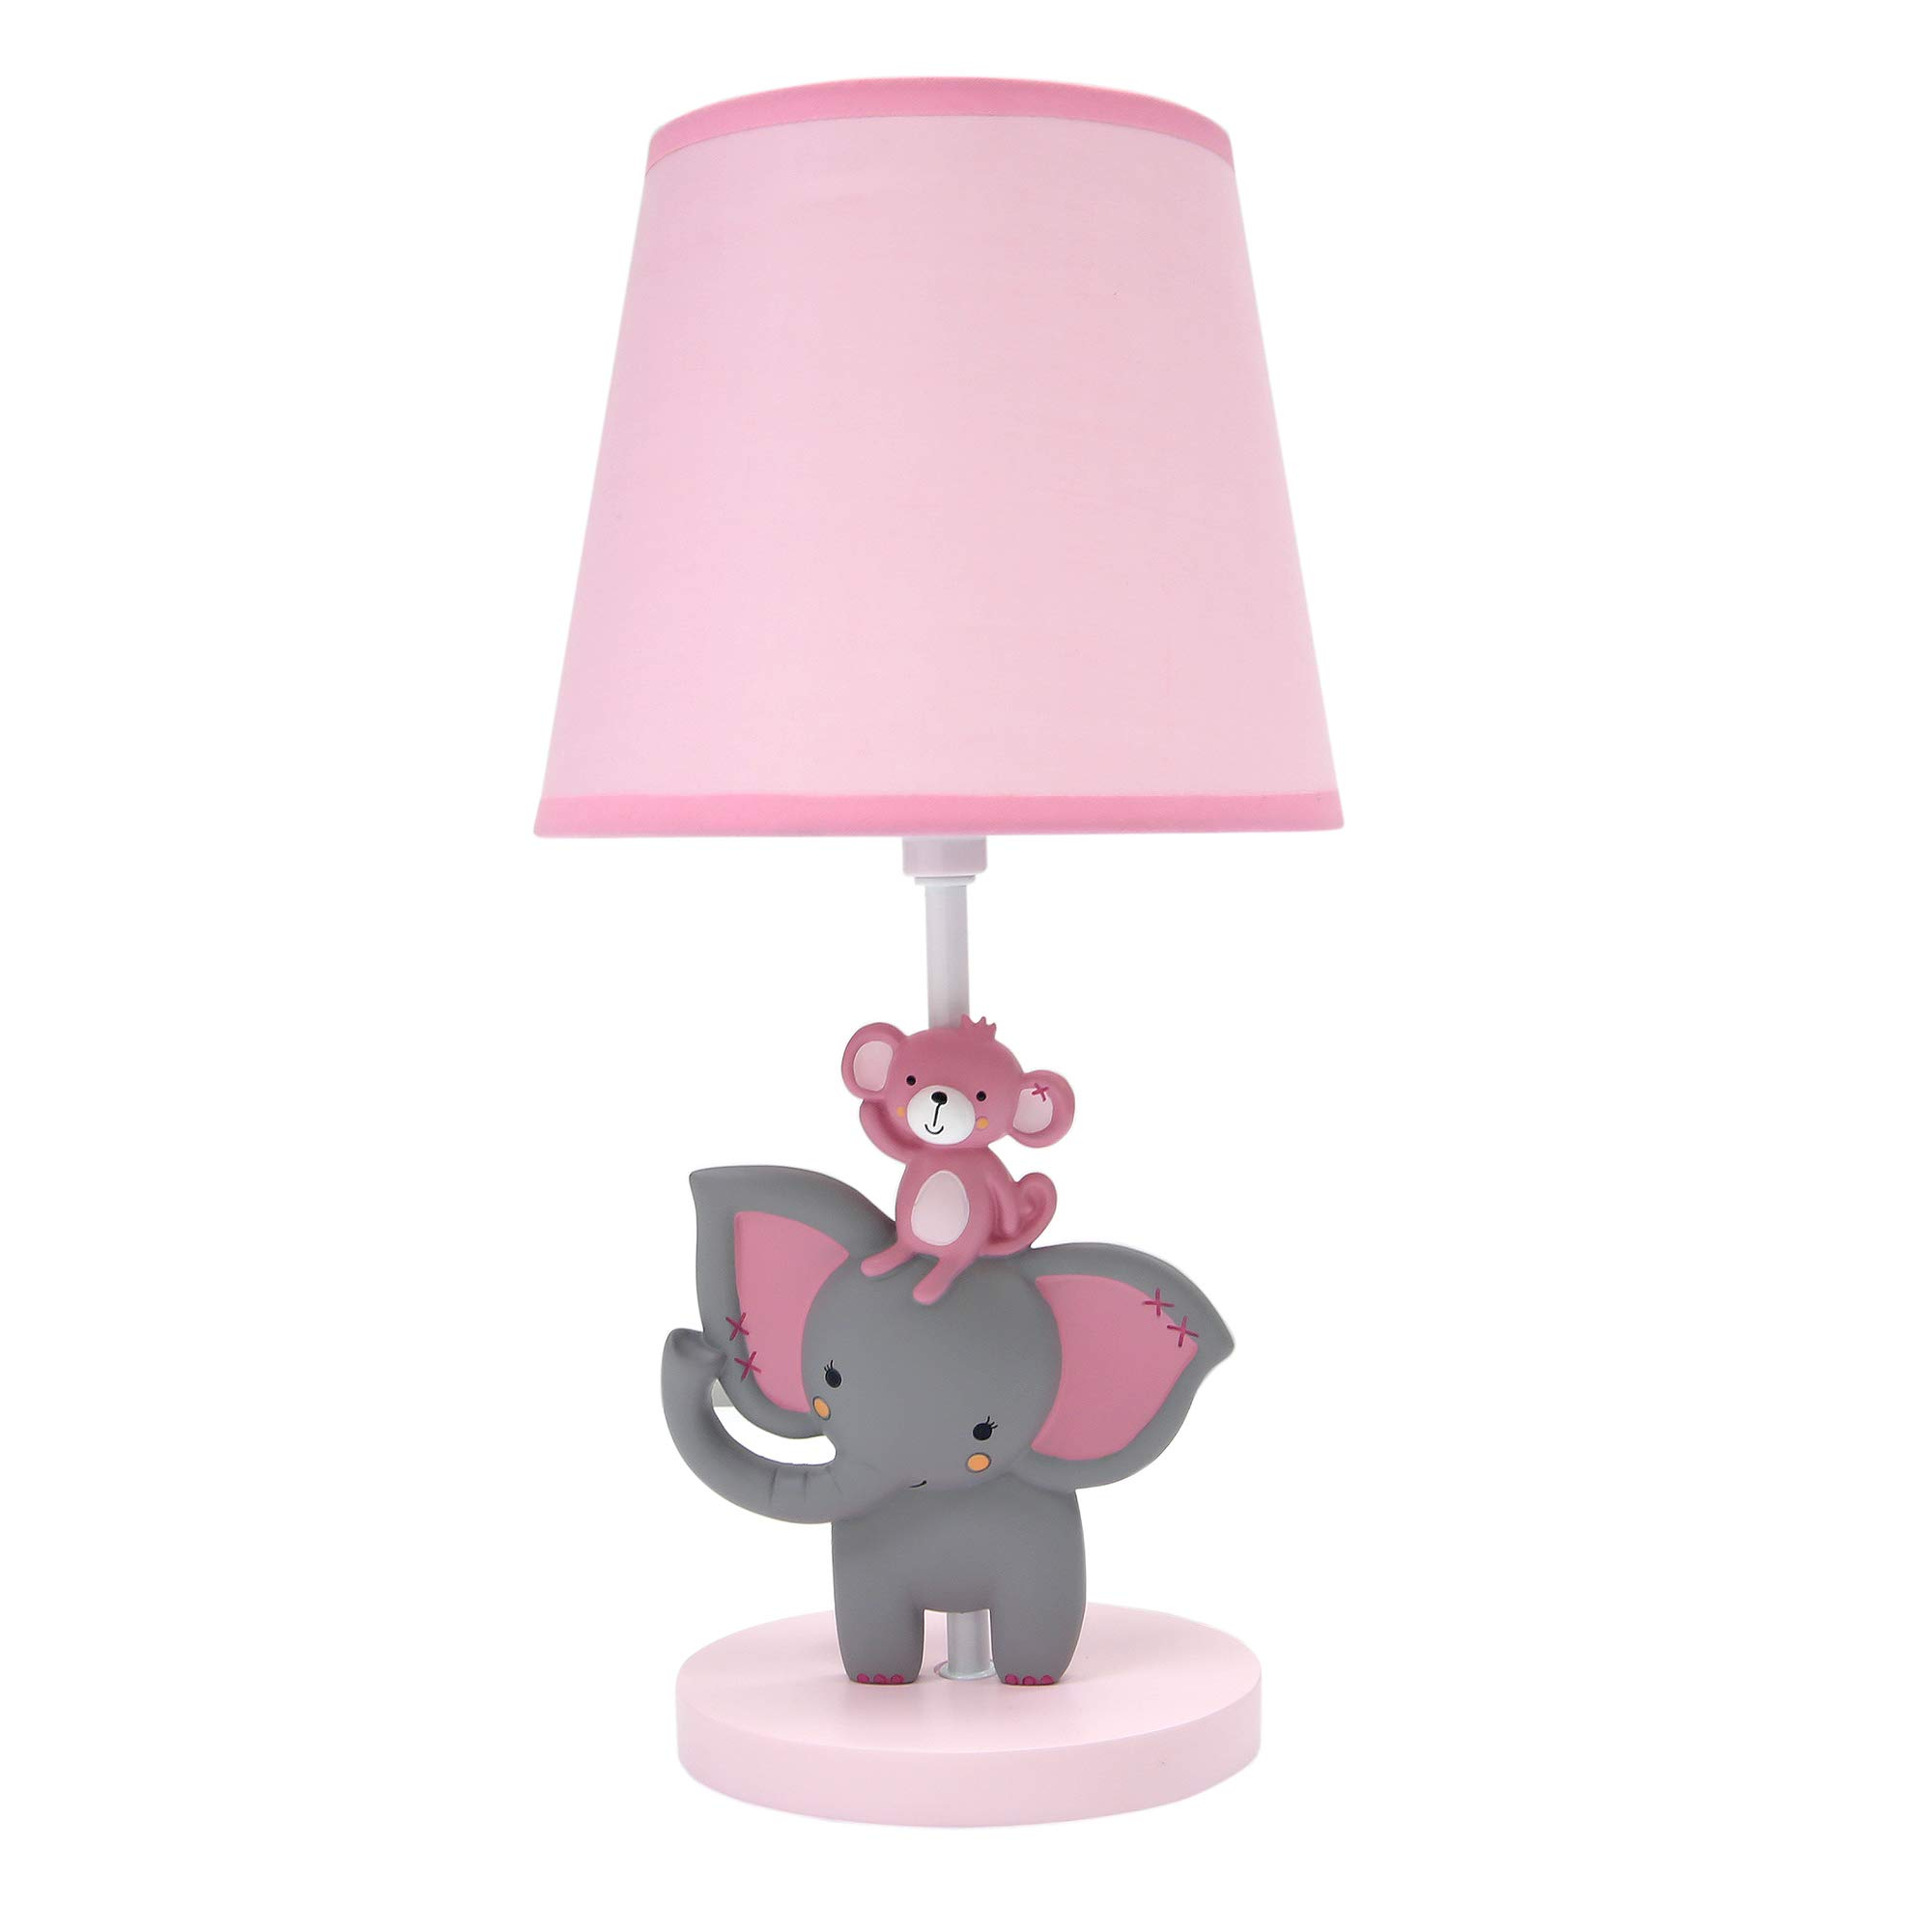 Bedtime Originals Twinkle Toes Lamp with Shade & Bulb, Pink